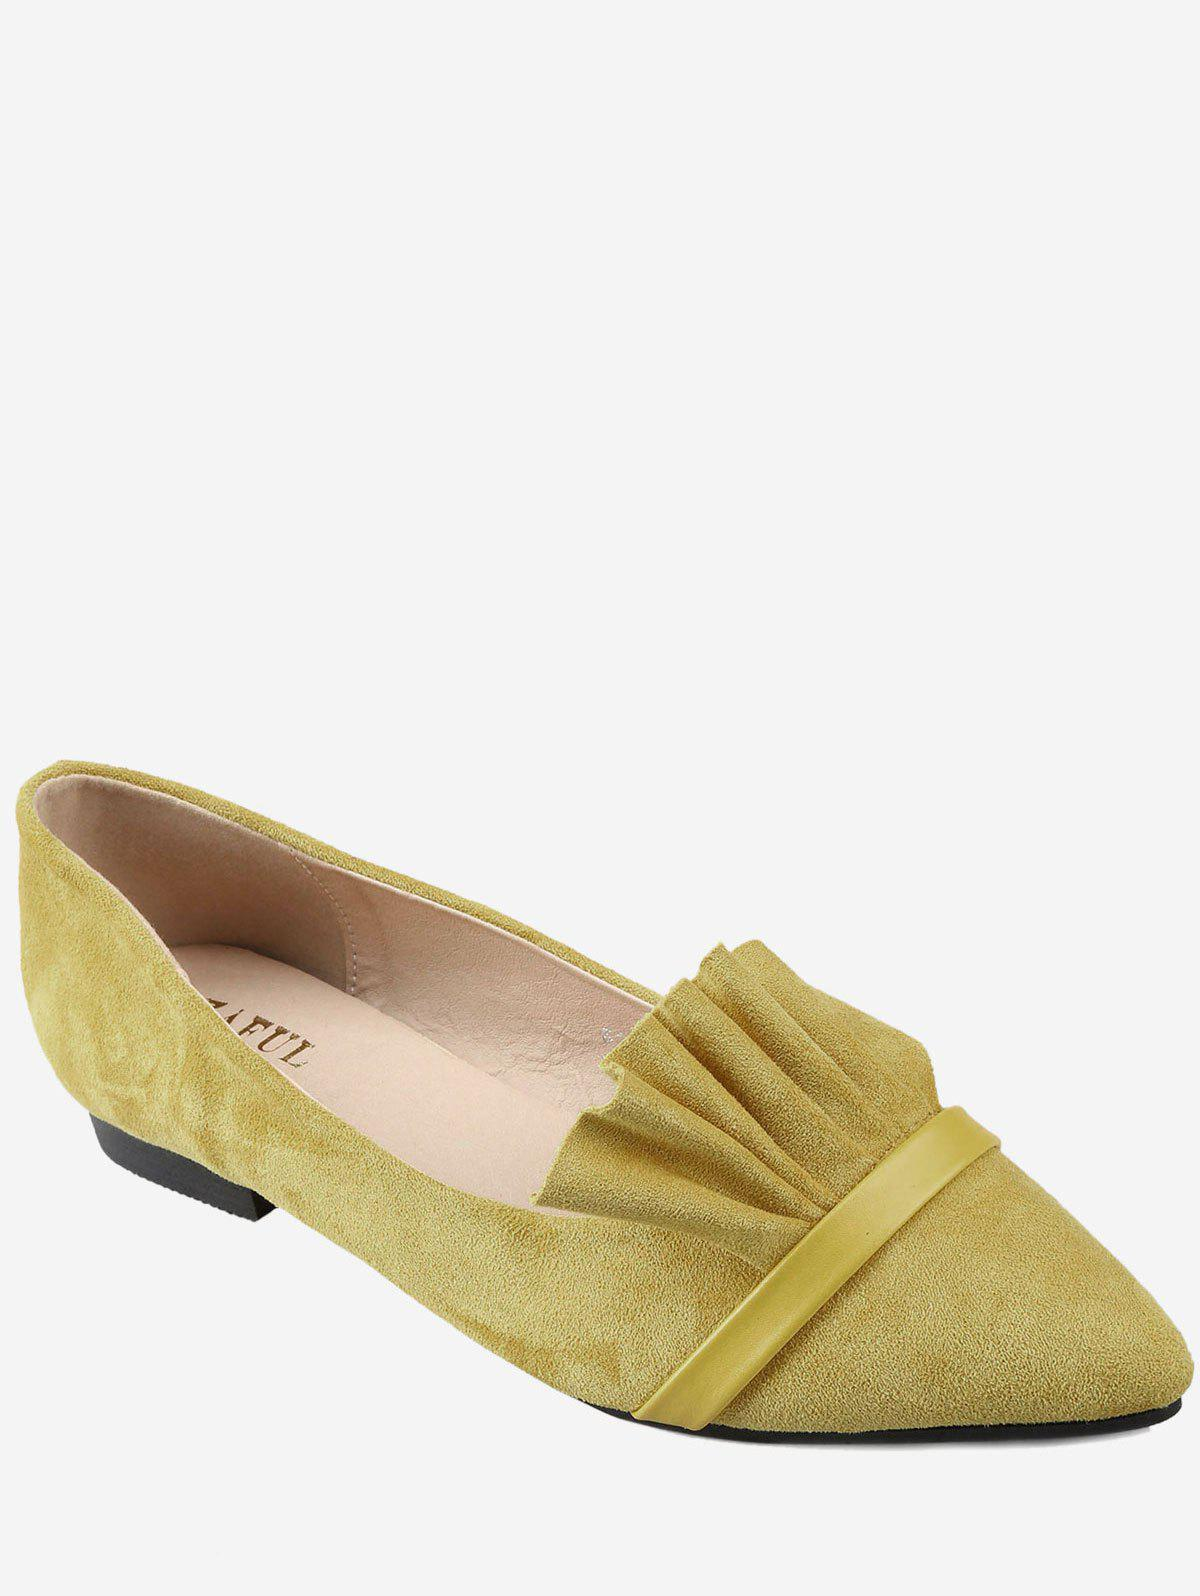 Affordable Chic Slip On Ruffles Pointed Toe Flats